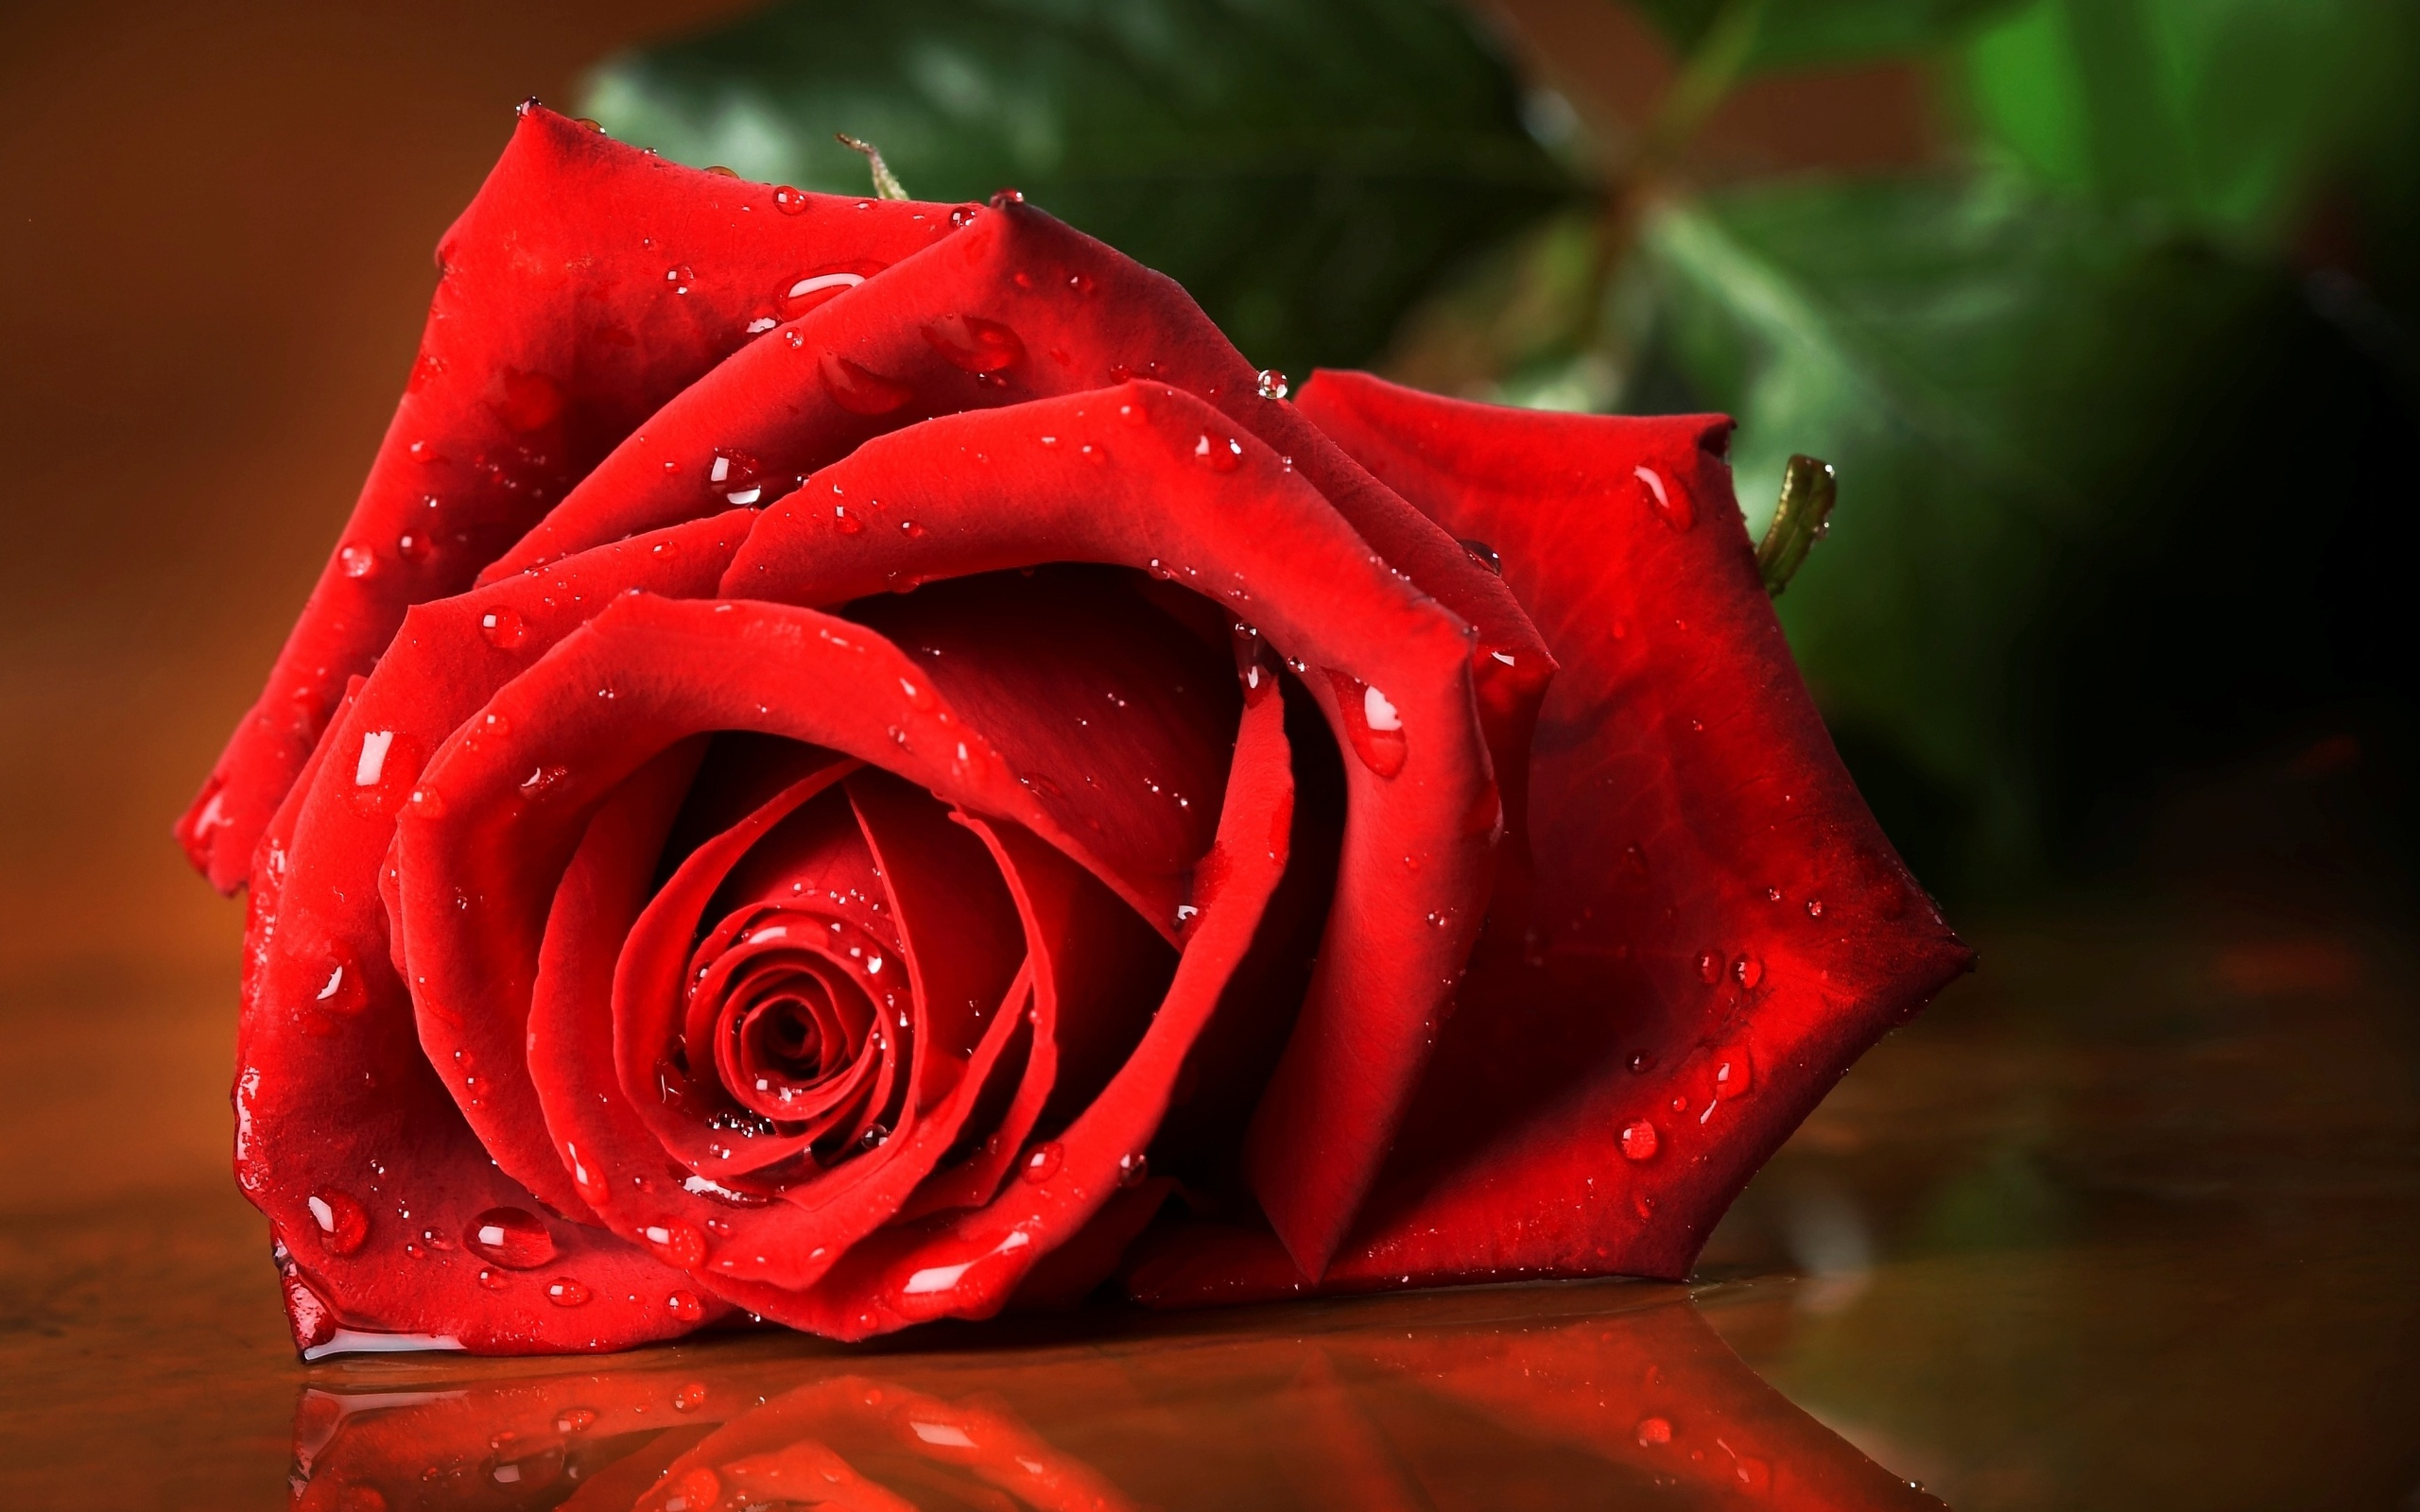 Hd wallpaper rose - Hd Wallpaper Background Id 398157 2560x1600 Earth Rose